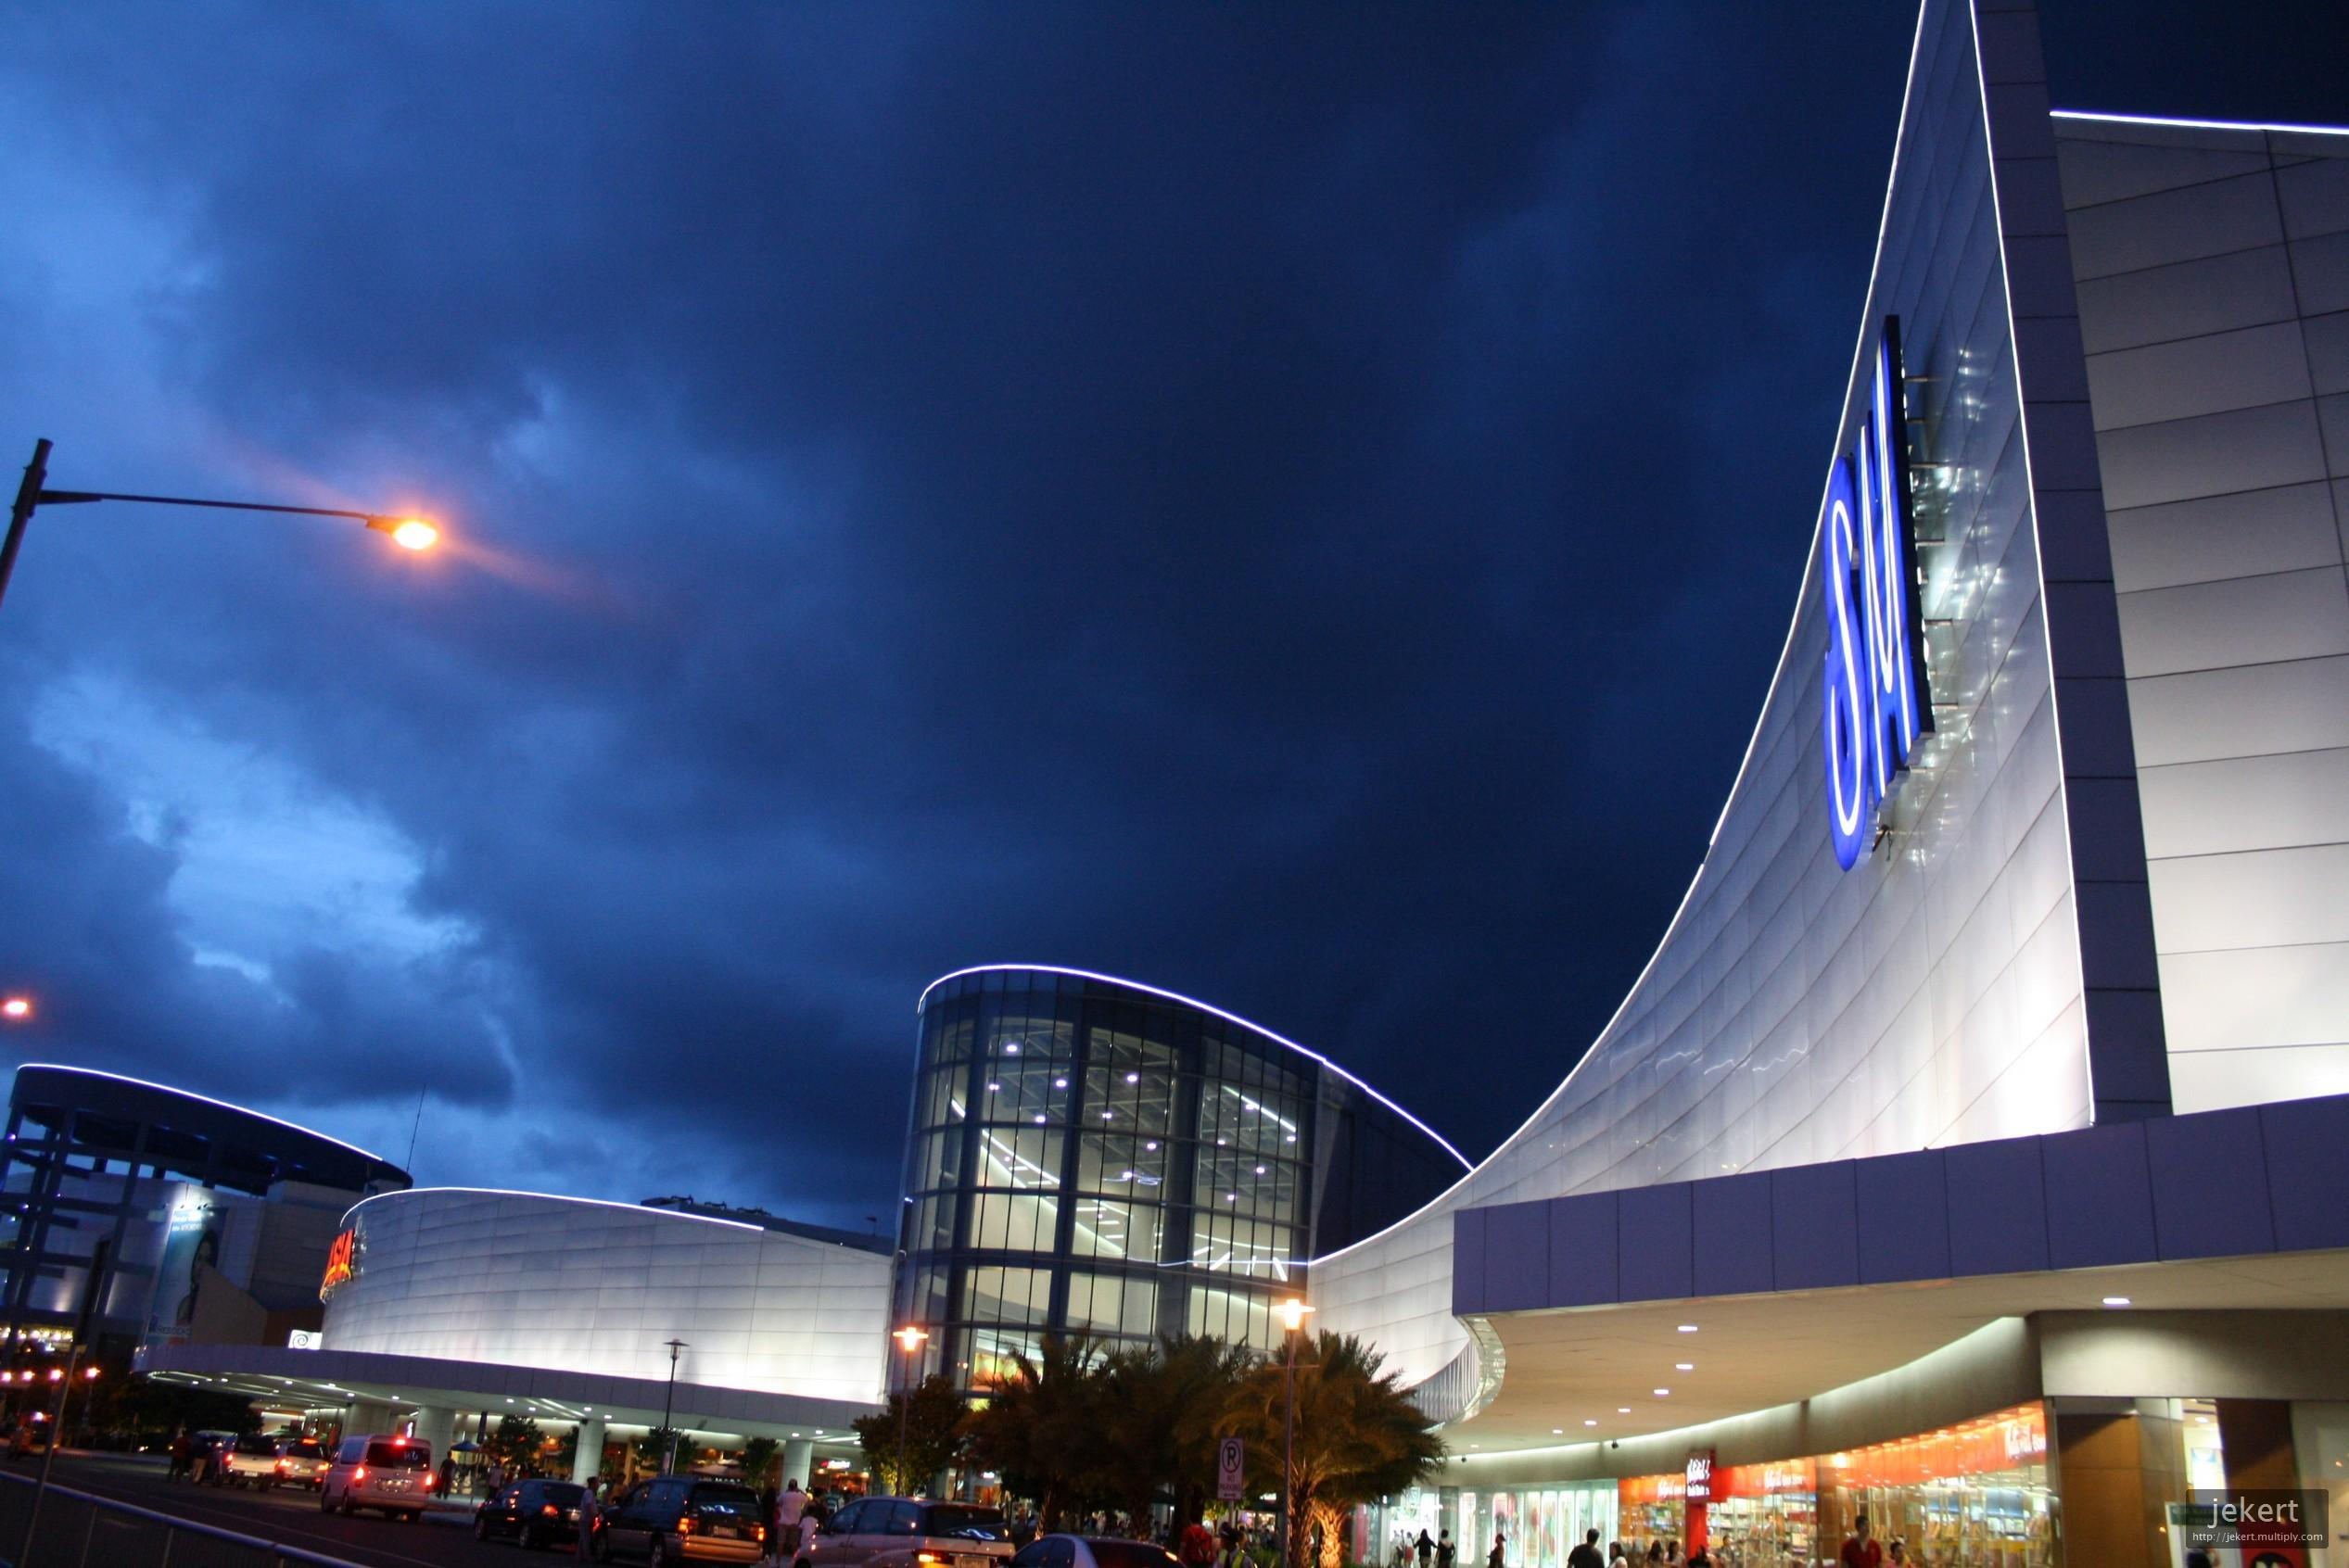 SM Mall of Asia: One of the Largest Malls in Asia